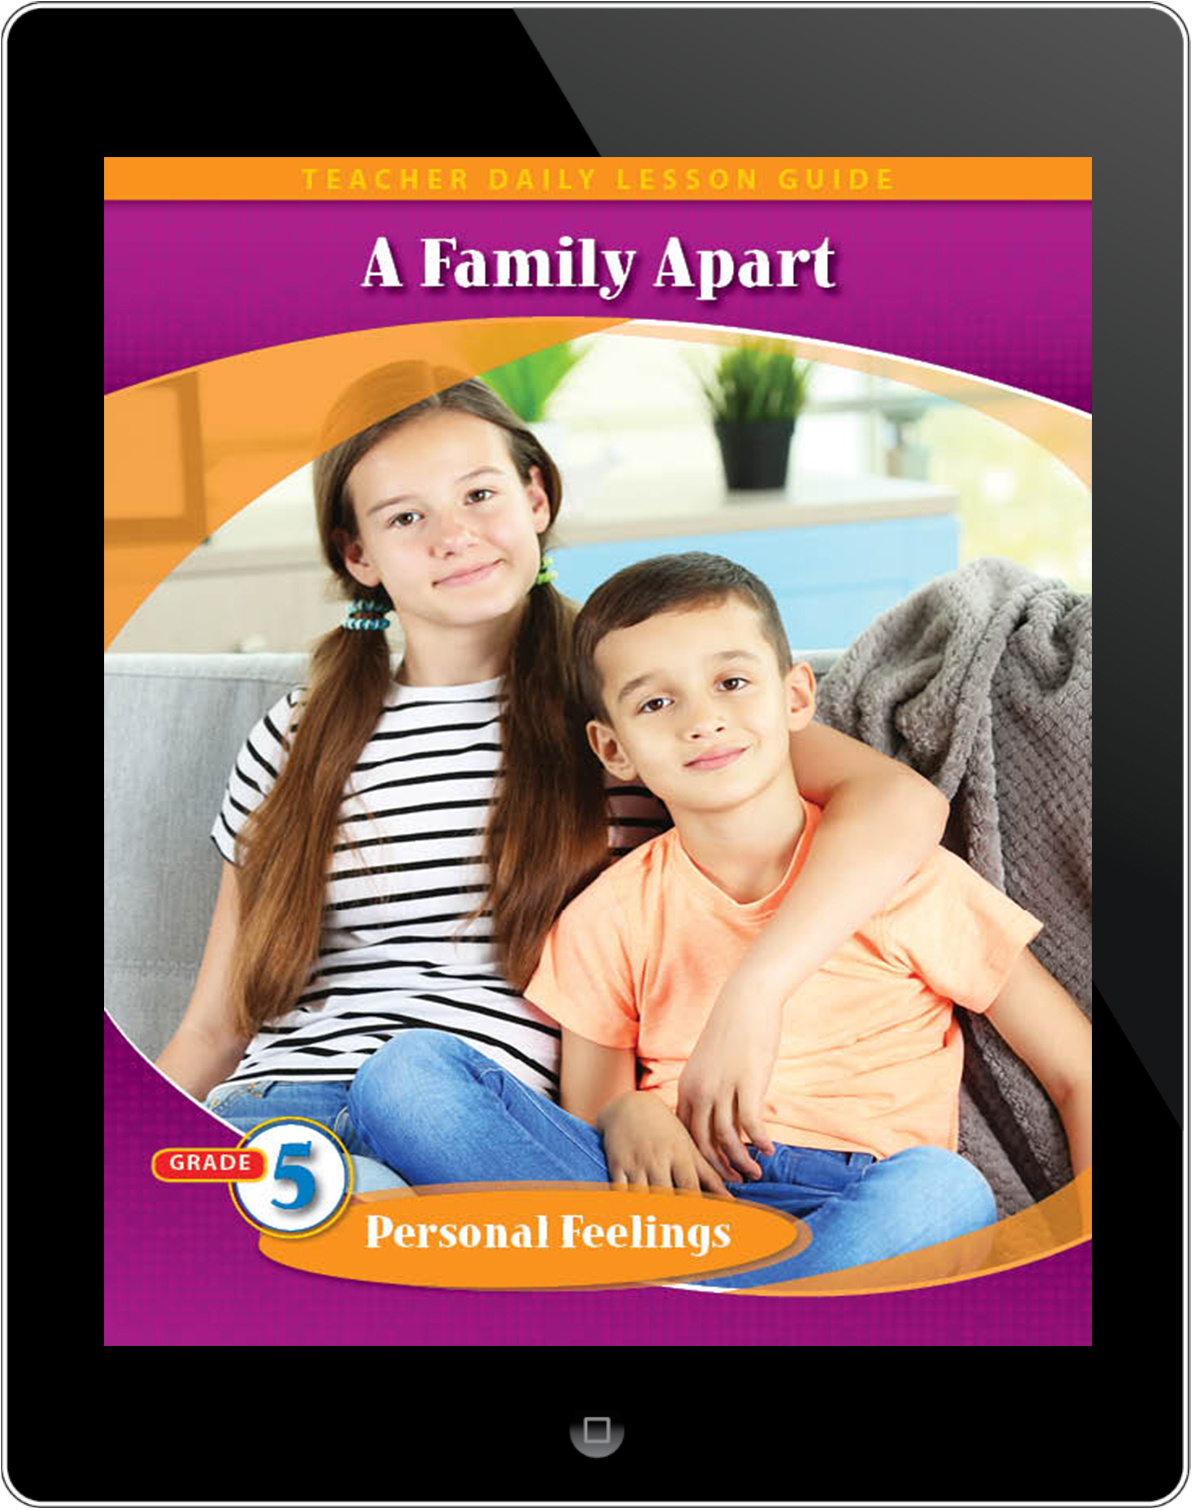 Pathways2.0 Grade 5 Personal Feelings Unit: A Family Apart Daily Lesson Guide 5 Year License